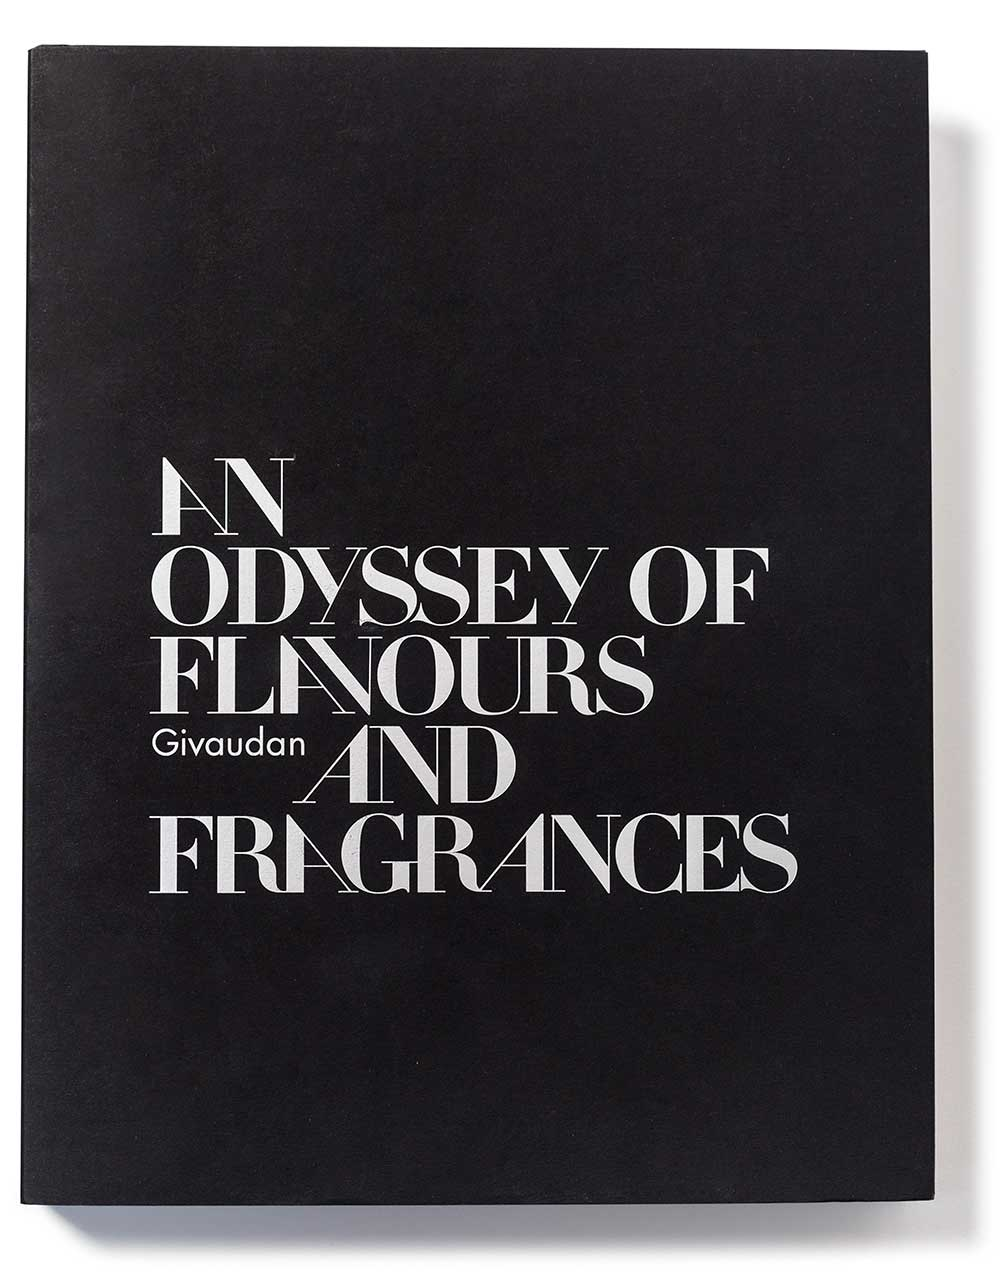 Givaudan: an Odyssey of Flavours and Fragrances – Caroline Champion, Percy Kemp, Annick Le Guérer, Brigitte Proust and Sean Rose